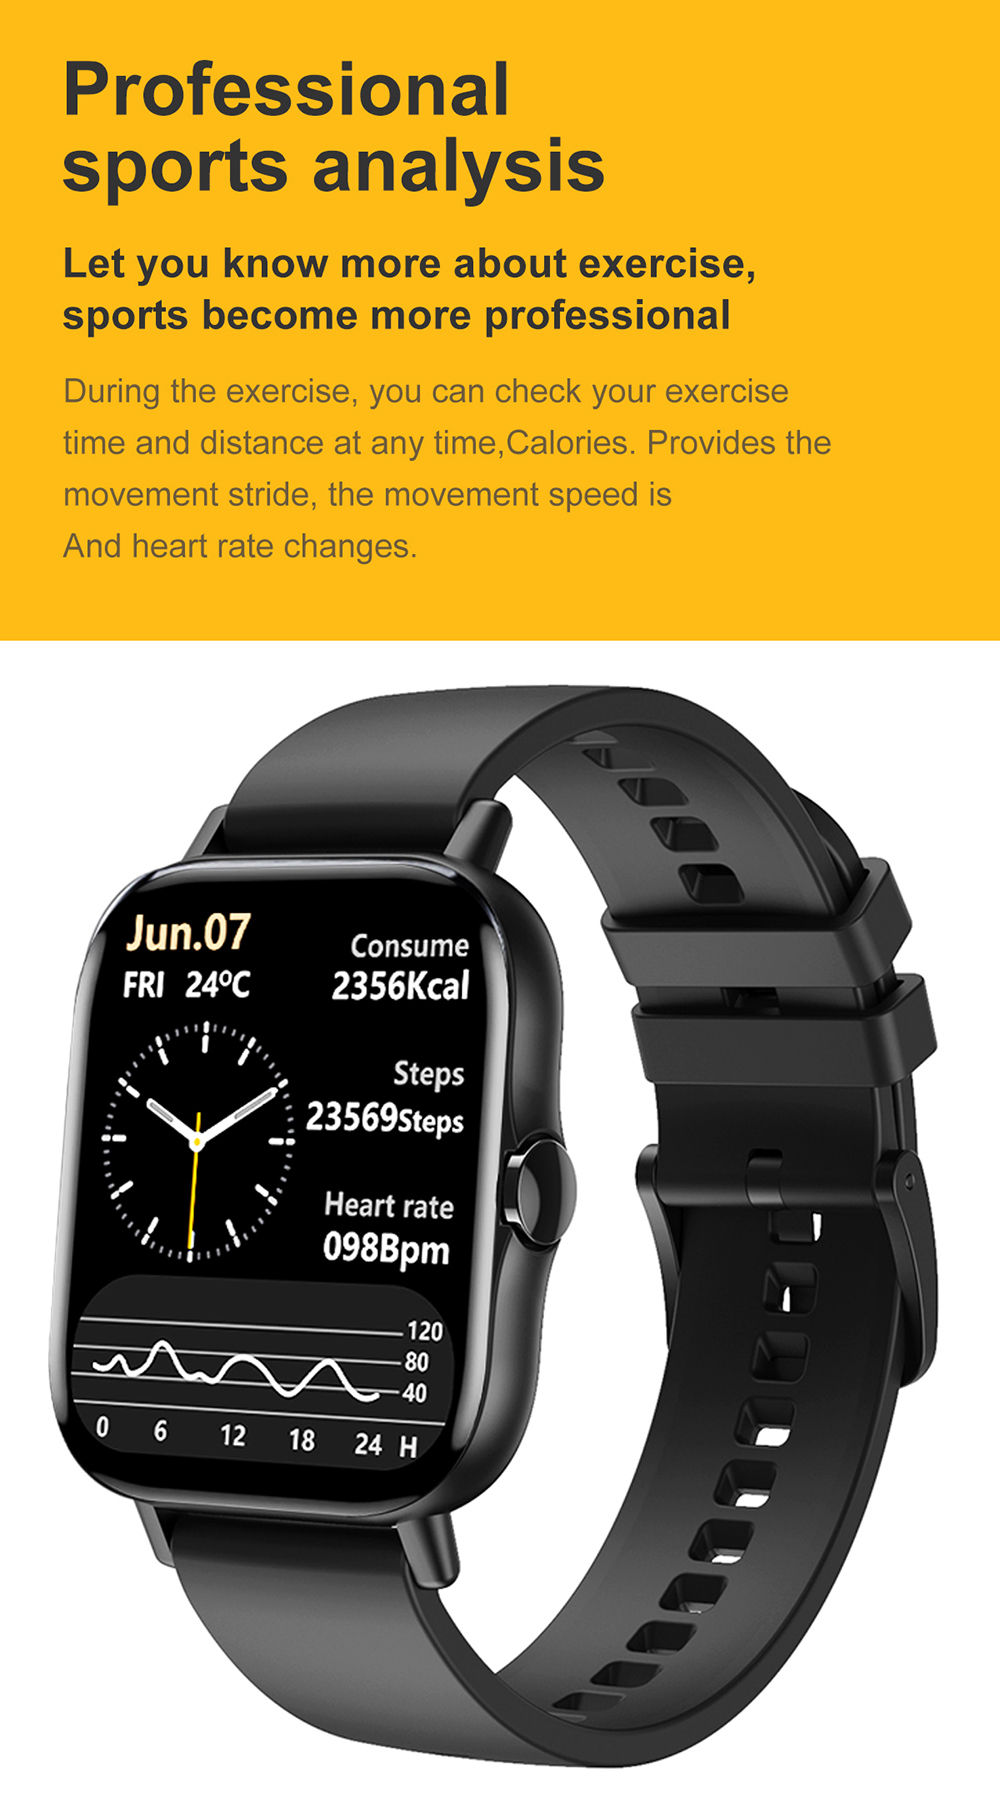 H1cb68cef3c9a46bbbdea7b79566e9afbU For Xiaomi IOS Apple Phone 1.78inch Smart Watch Android Men IP68 Waterproof Full Touch Woman Smartwatch Women 2021 Answer Call